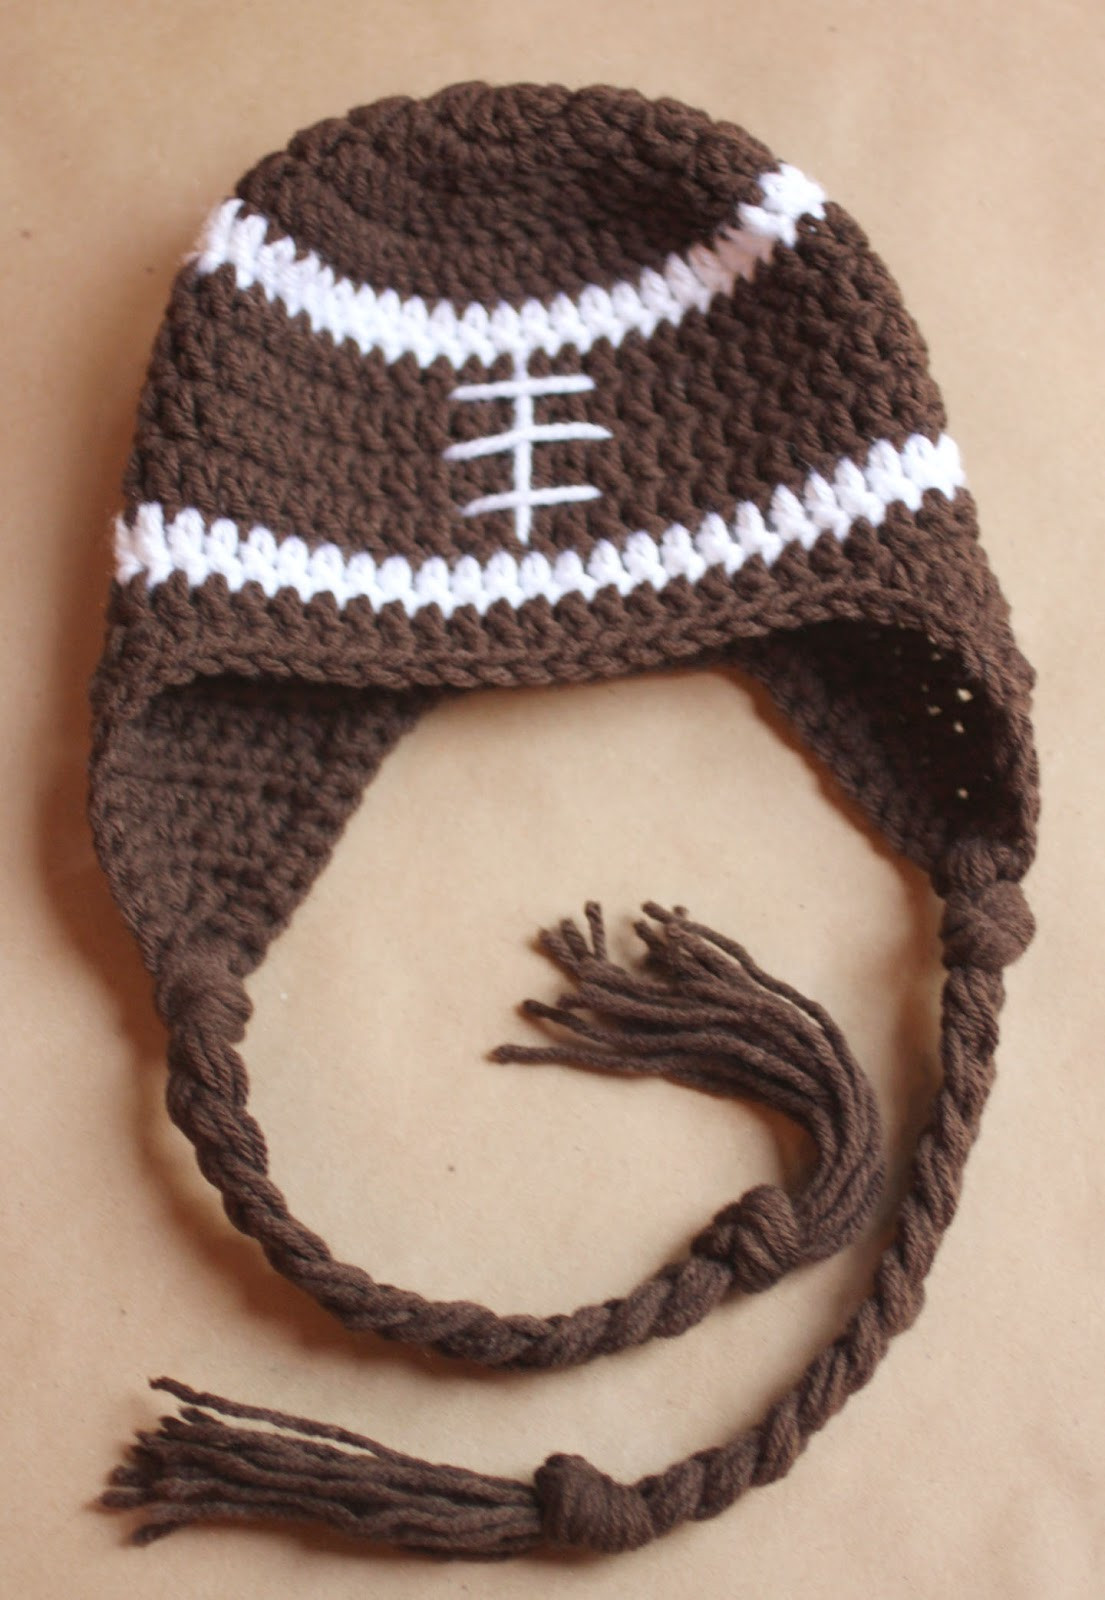 Luxury Crochet Football Earflap Hat Pattern Repeat Crafter Me Earflap Hat Crochet Pattern Of Wonderful 43 Images Earflap Hat Crochet Pattern